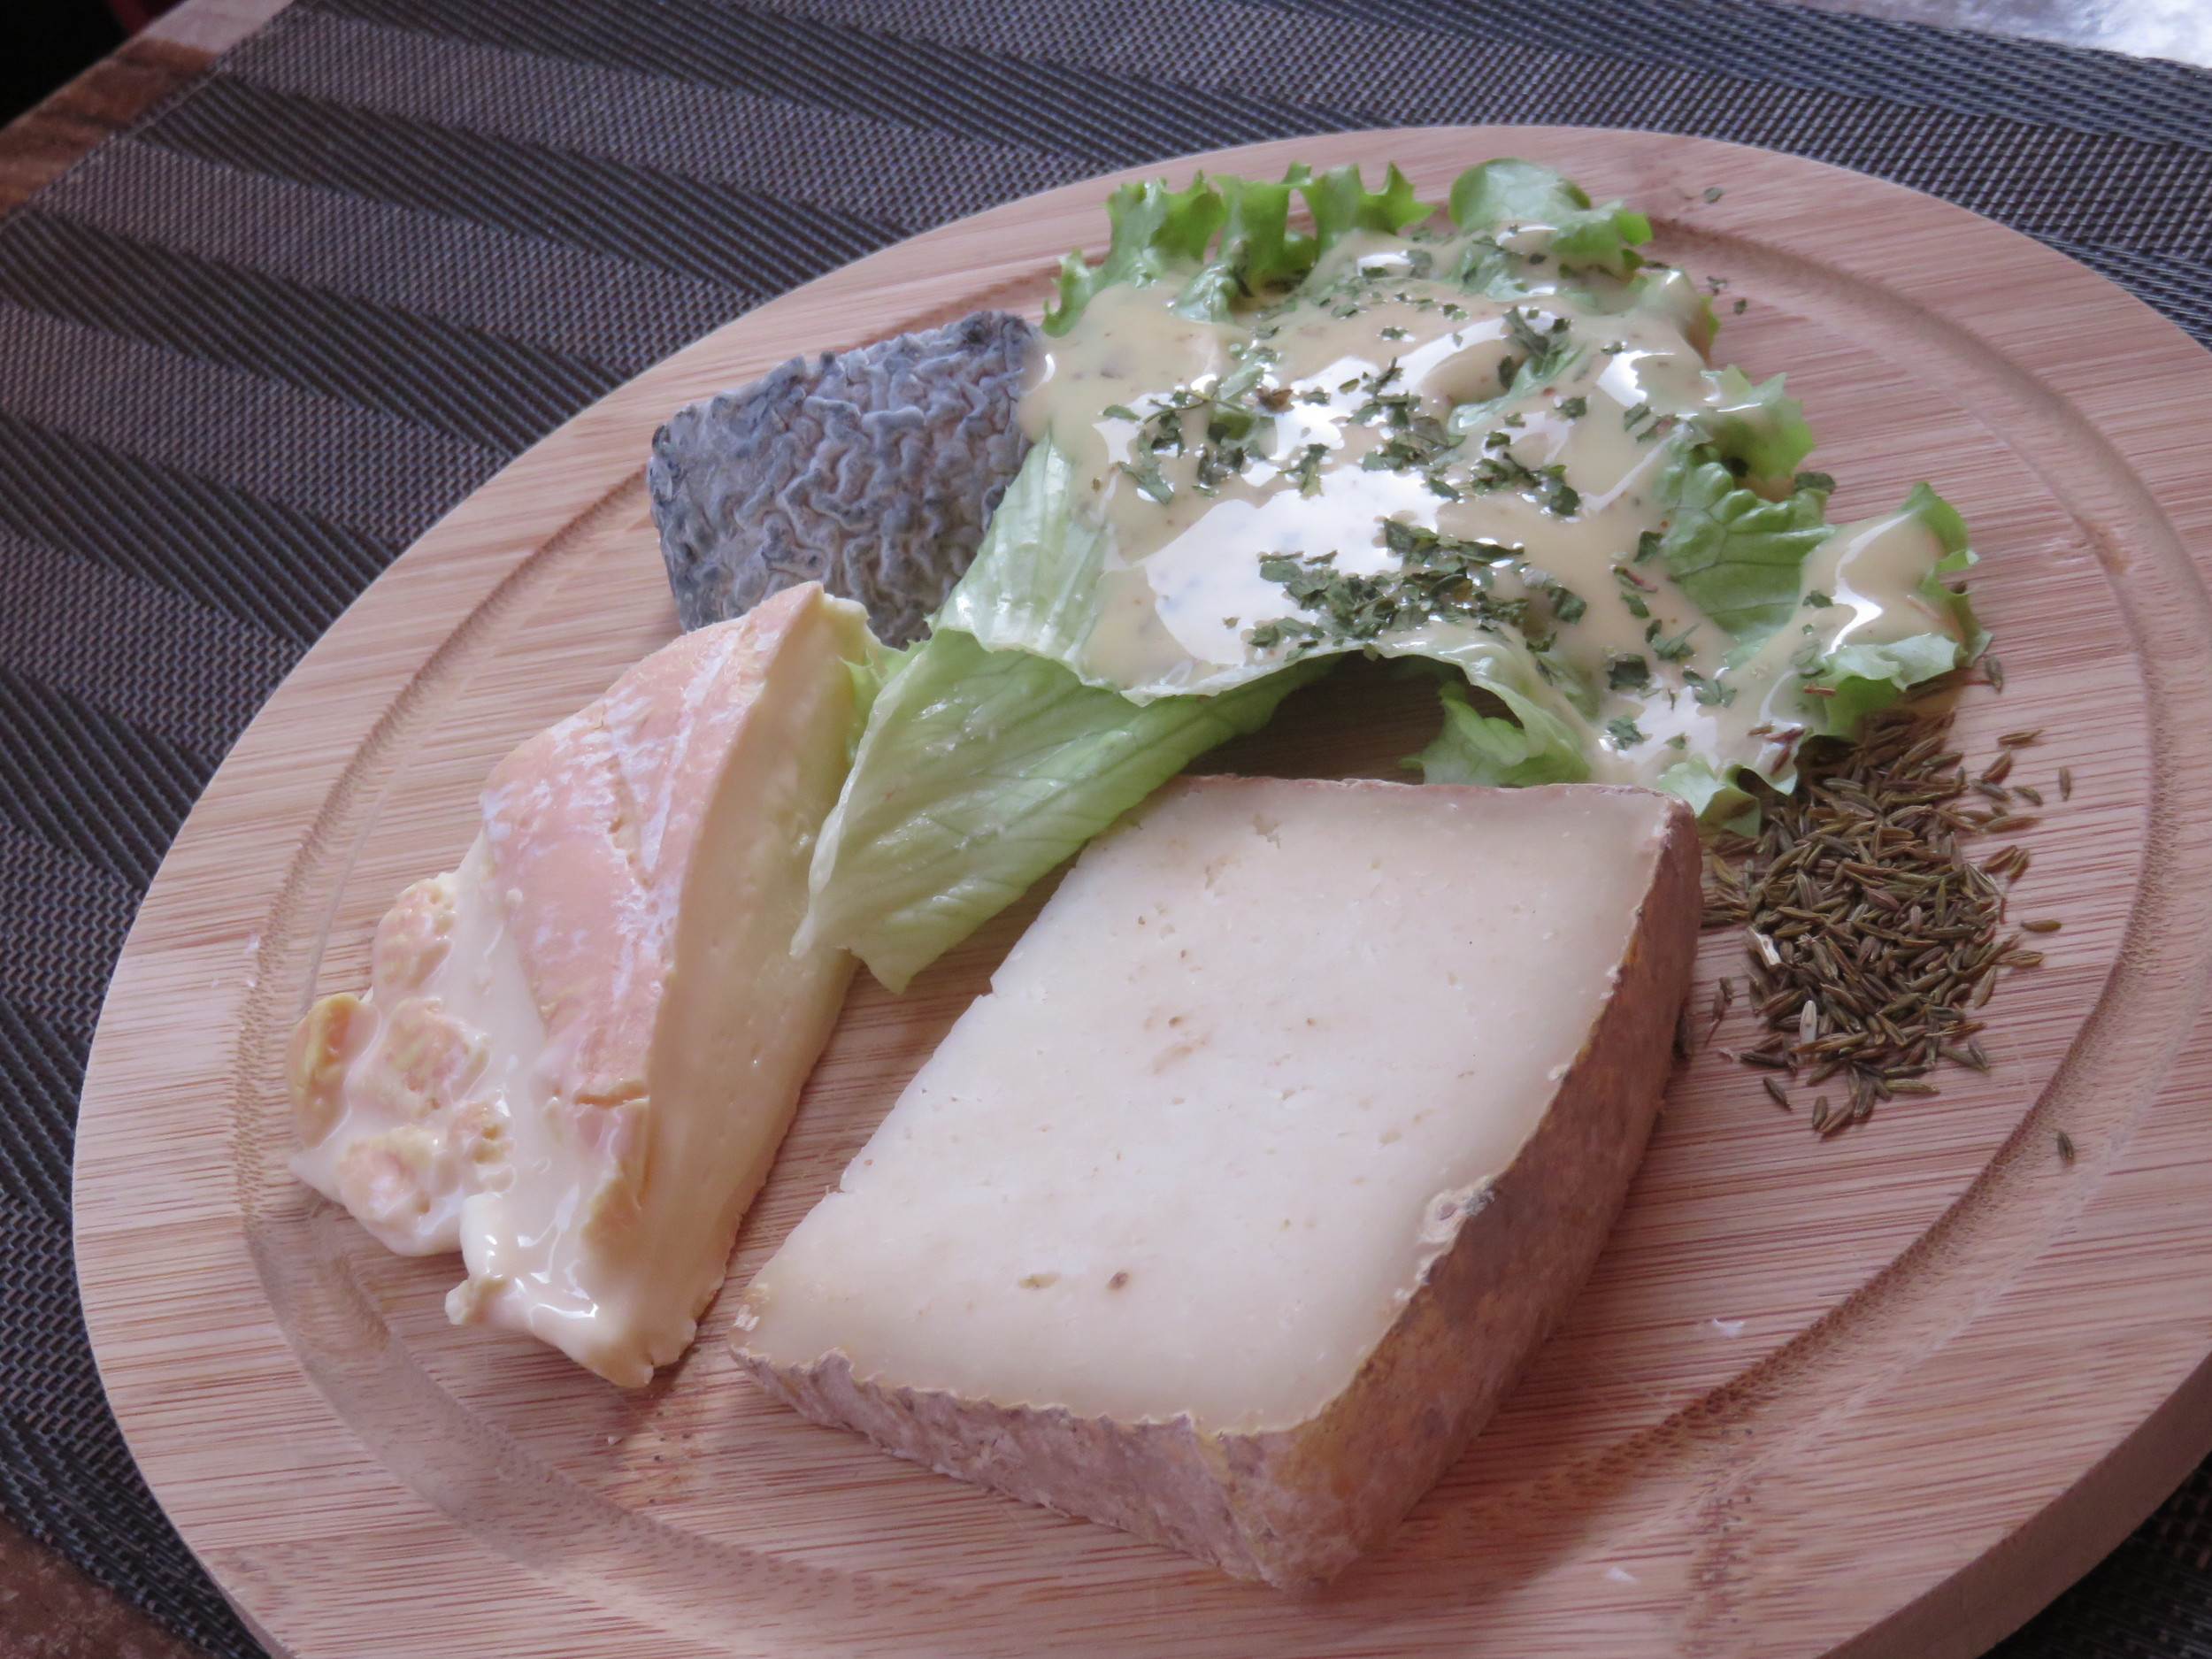 Cheese plate at Aux P'tits Crocs. The big slab is  tomme d'Alsace . From there, clockwise, is the munster,  chèvre cendré  (goat's cheese with ash), a salad, and cumin seeds for the munster.